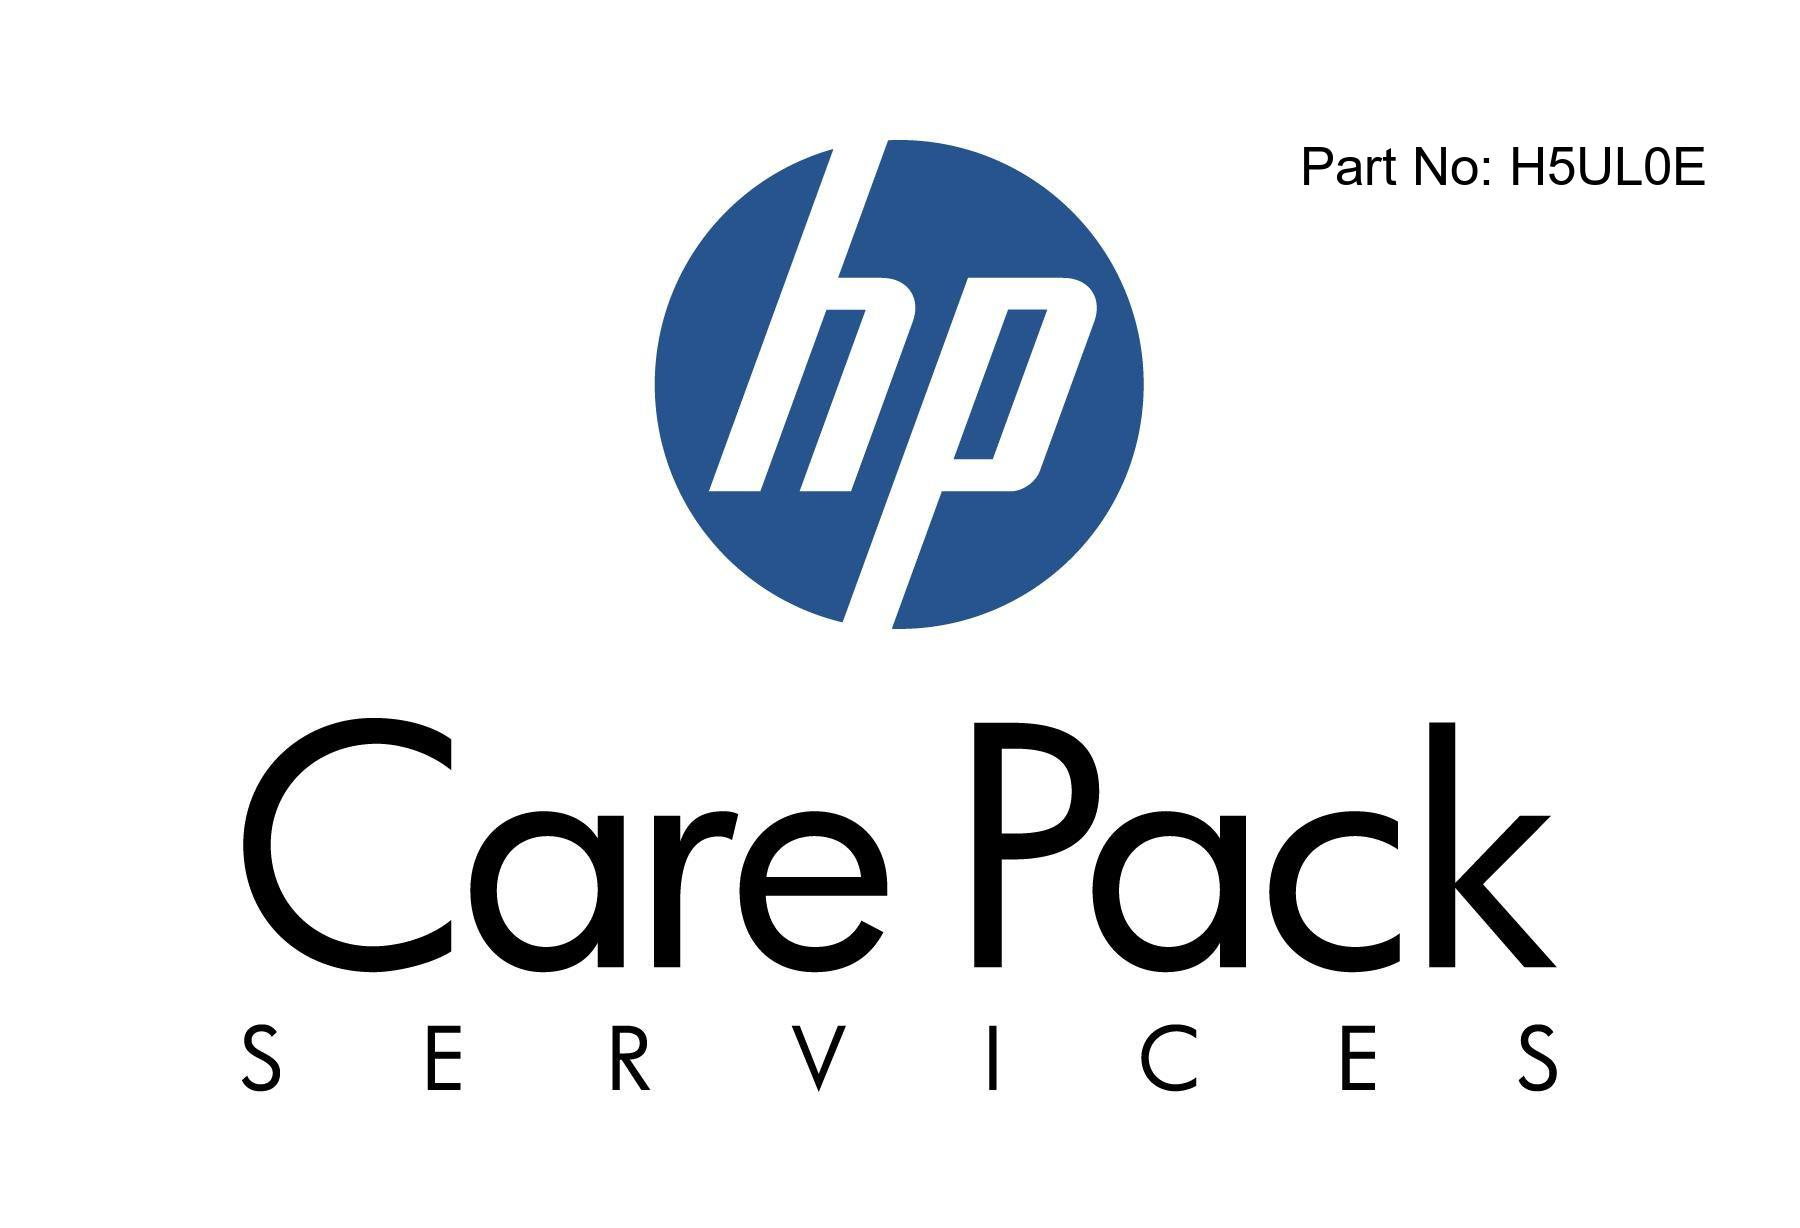 Foundation Care Software Support 24x7 - Technical support - for HPE StoreVirtual VSA Software 2014 - 10 TB capacity - phone consulting - 4 years - 24x7 - response time: 2 h